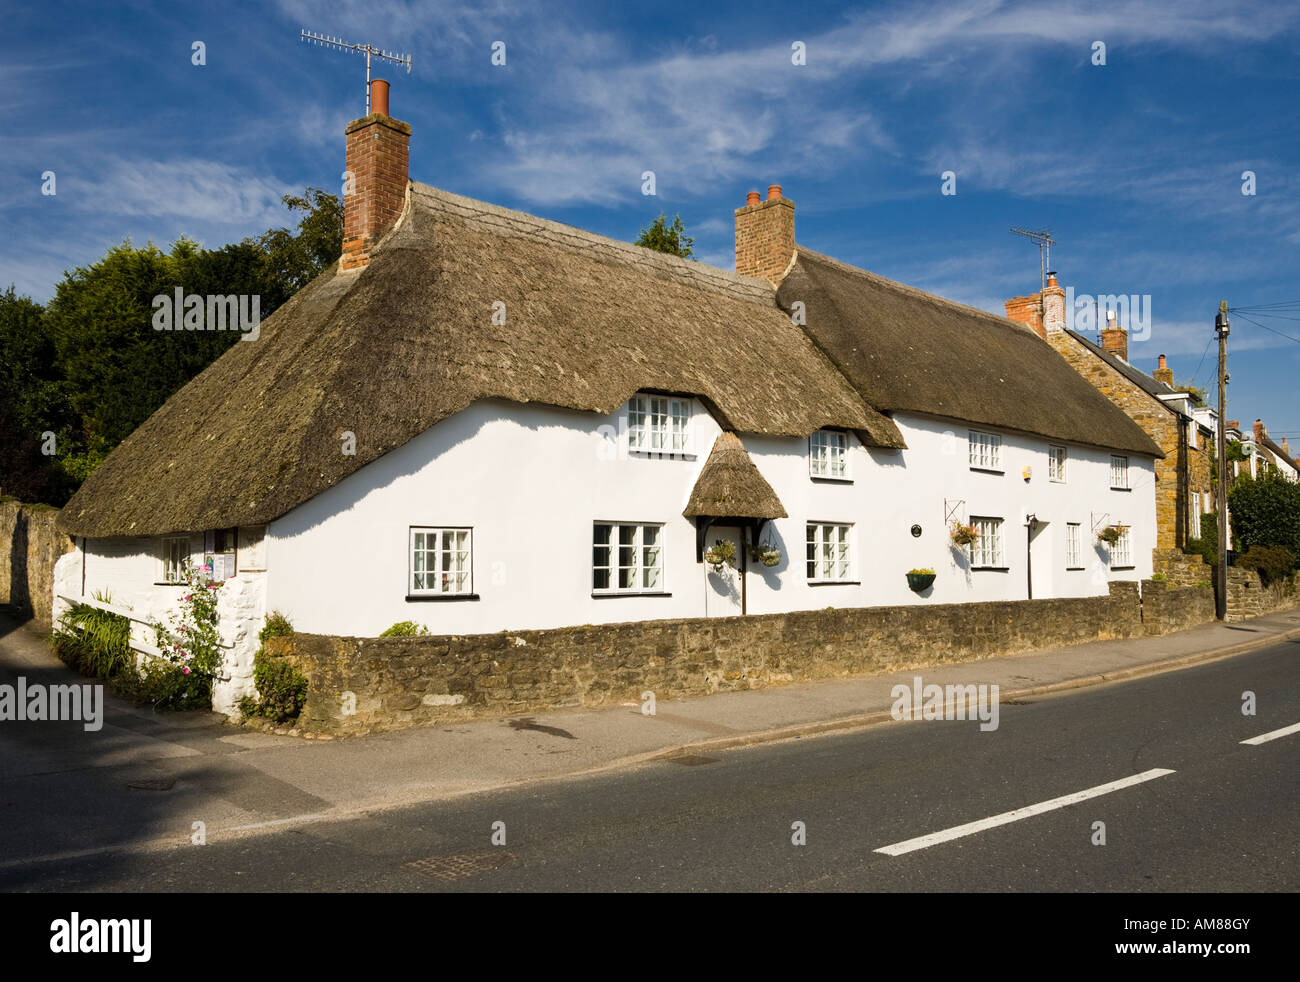 Thatched cottages in village of Chideock, Dorset, England, UK - Stock Image